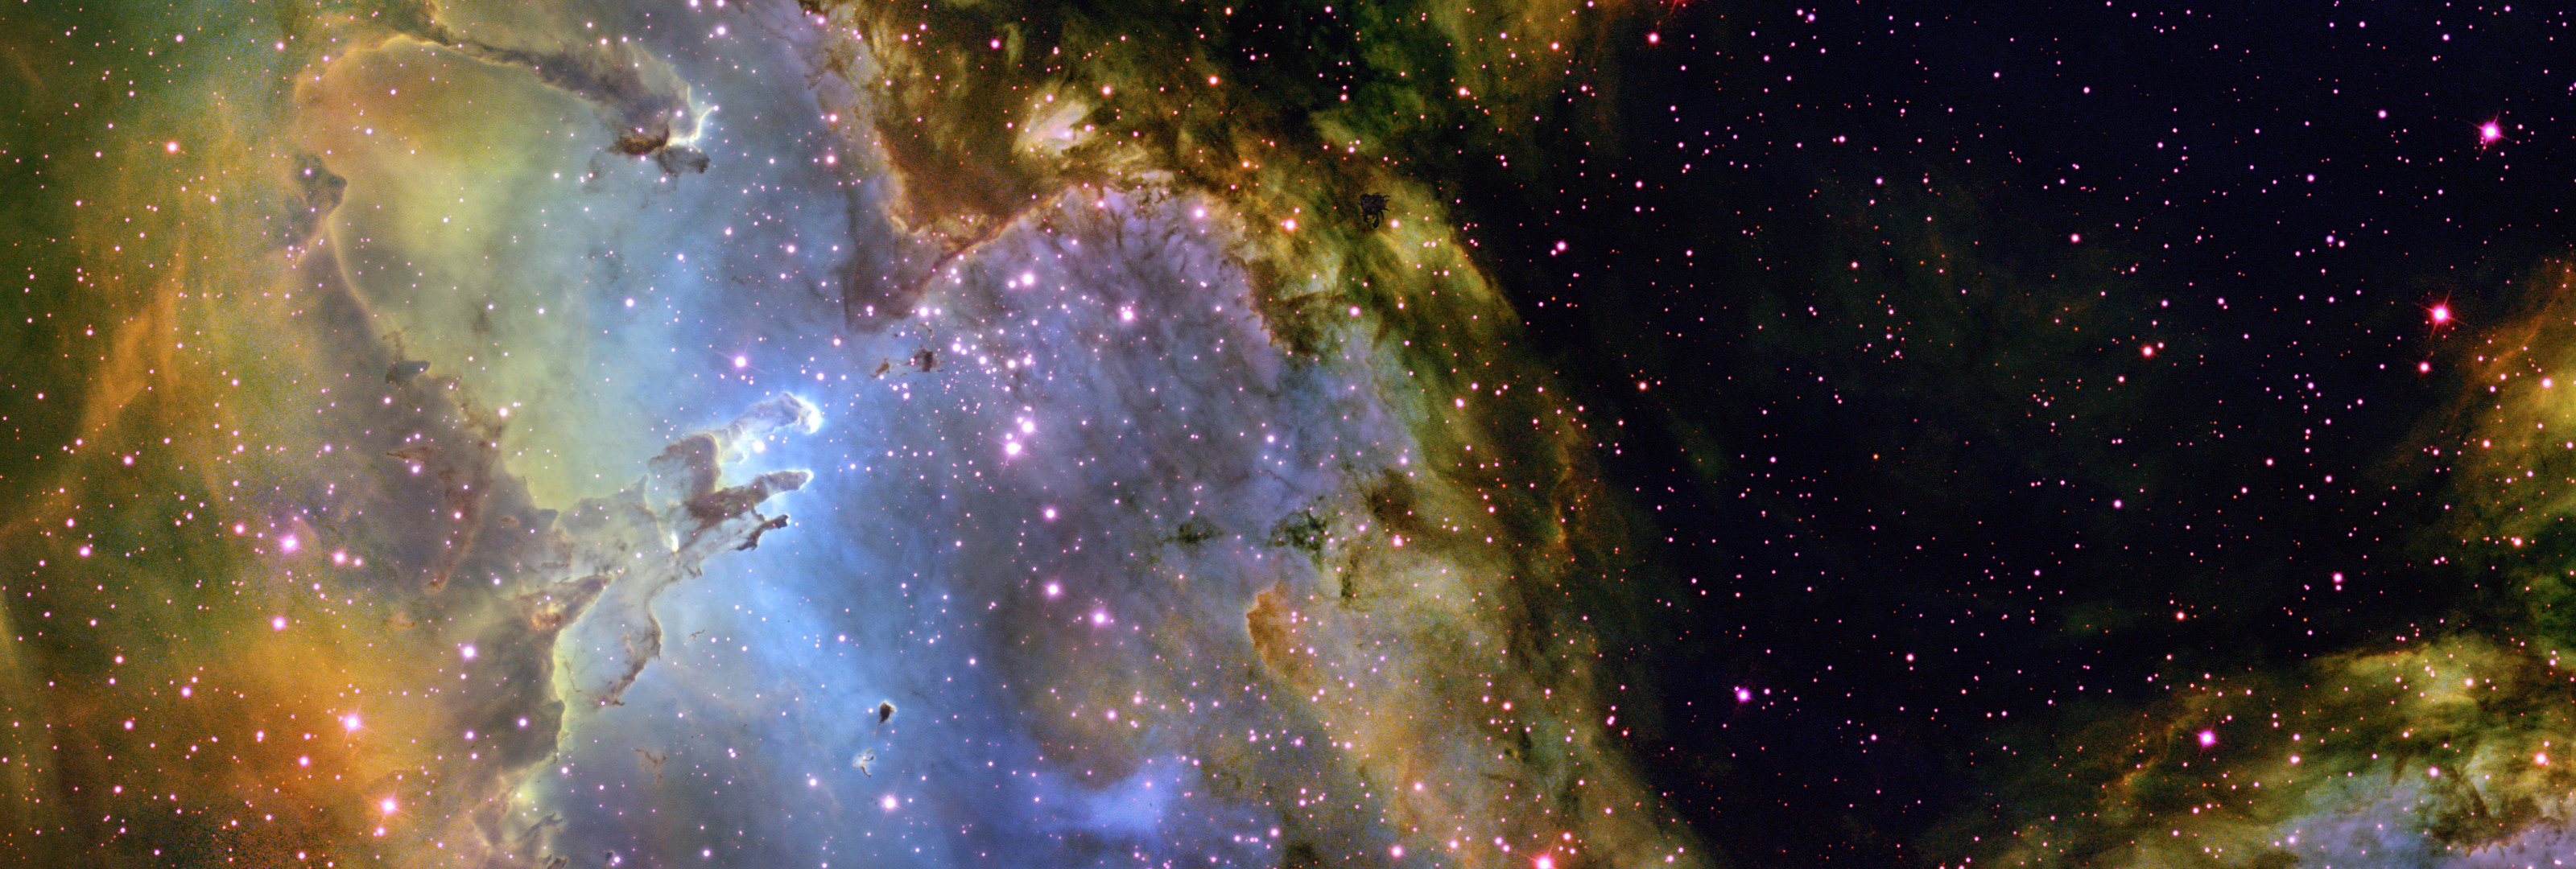 3200x1080 ... adamantpieeater Eagle Nebula Wallpaper 3200 X 1080 by adamantpieeater